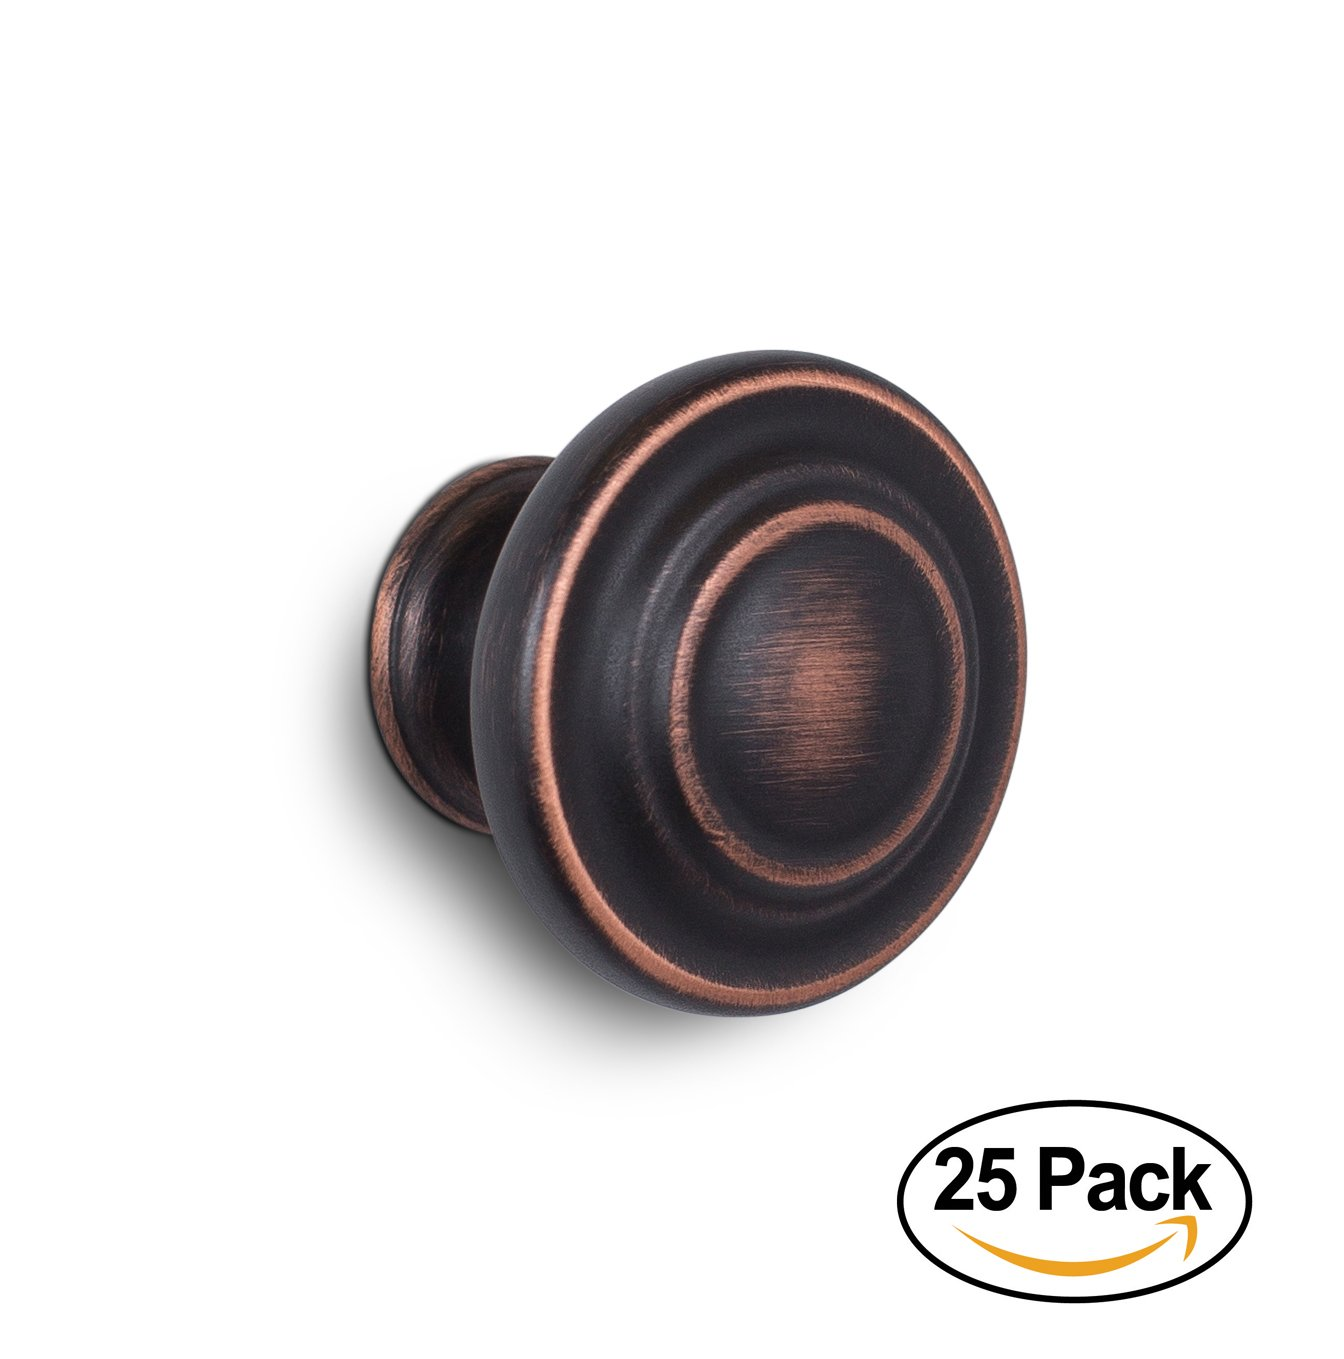 BirdRock Home Classic Cabinet Knobs | Oil Rubbed Bronze | 25 Pack | Kitchen Cupboard Furniture Cabinet Hardware Drawer Dresser Pull | 1.25 Inch Diameter